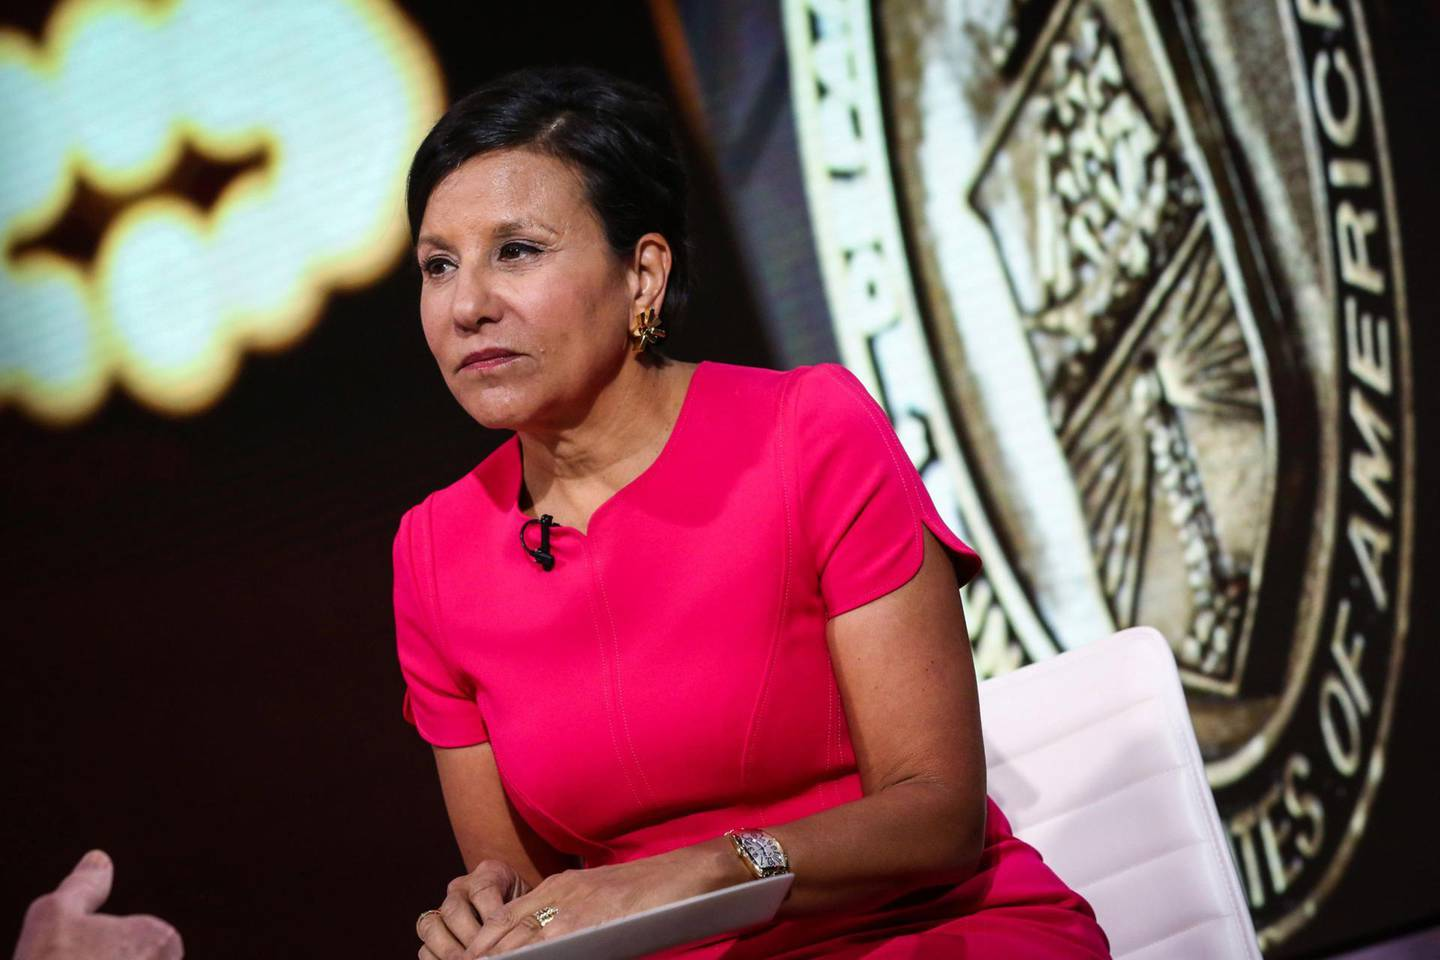 Penny Pritzker, Former U.S. Secretary of Commerce, speaks during a Bloomberg interview in New York, U.S., on Friday, May 12, 2017. Photographer: Christopher Goodney/Bloomberg